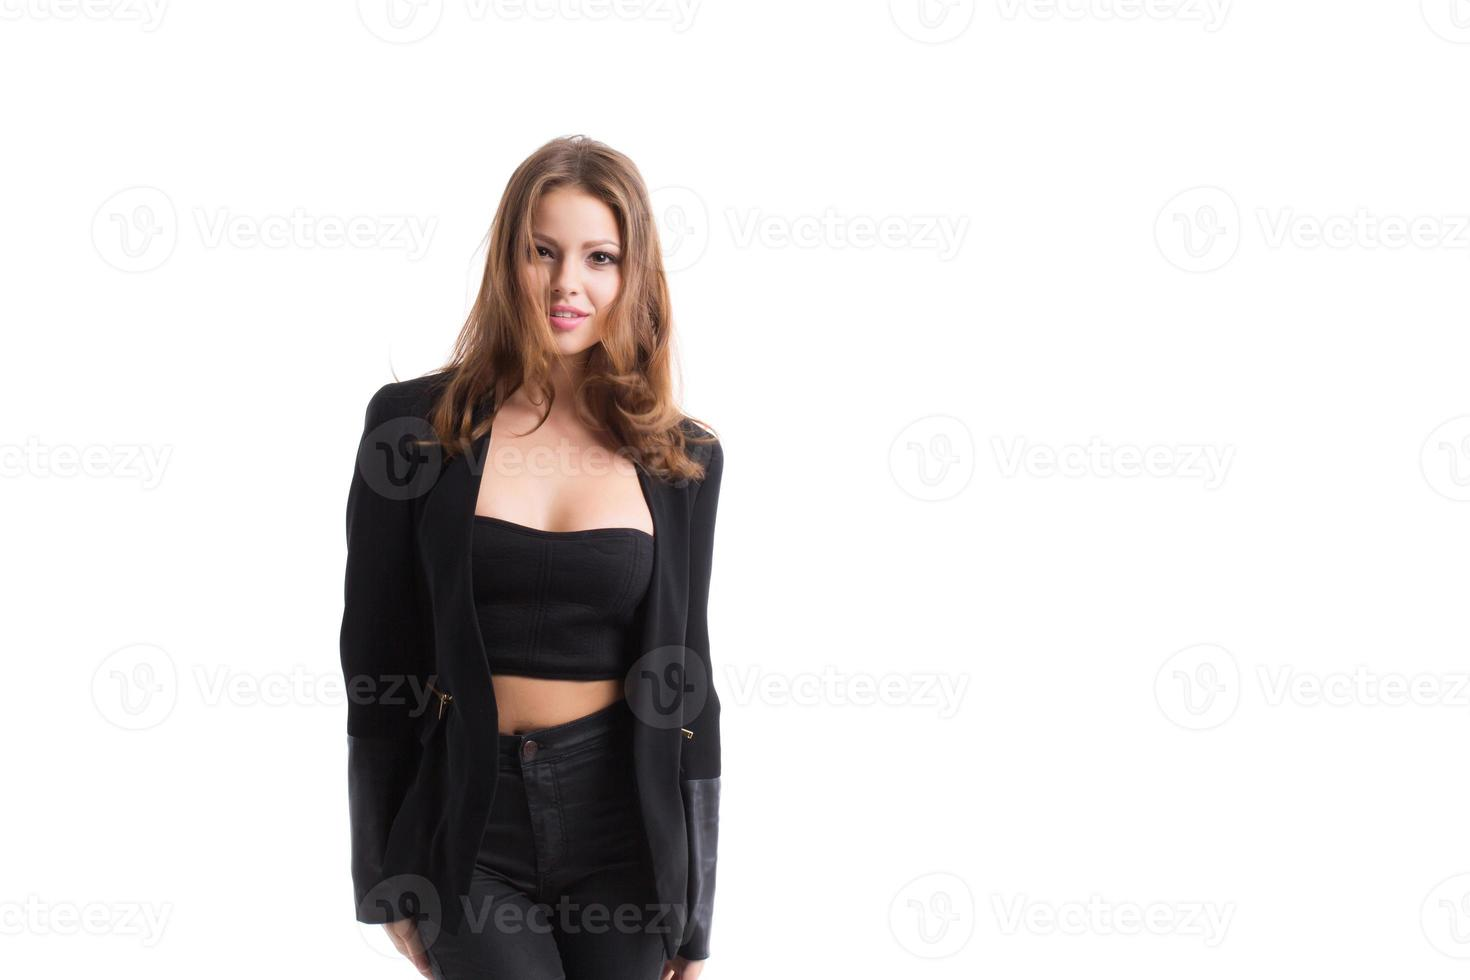 mode femme confiante en vêtements noirs. photo